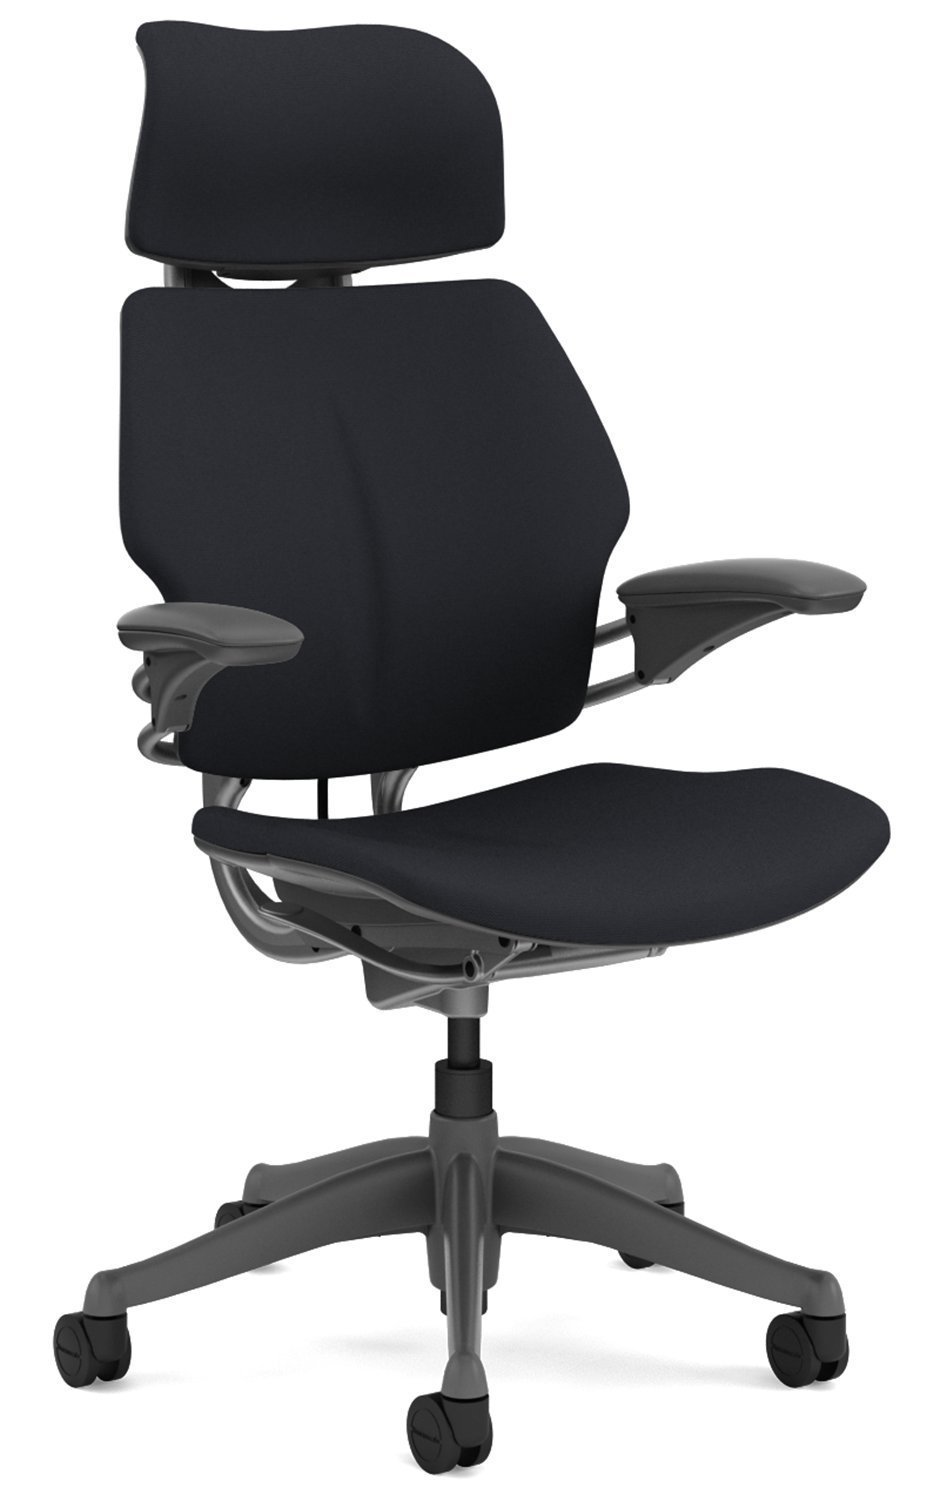 Freedom chair leather - Amazon Com Freedom Chair By Humanscale Headrest Advanced Duron Arms Gel Seat Standard Carpet Casters Titanium Frame Graphite Wave Seat Kitchen